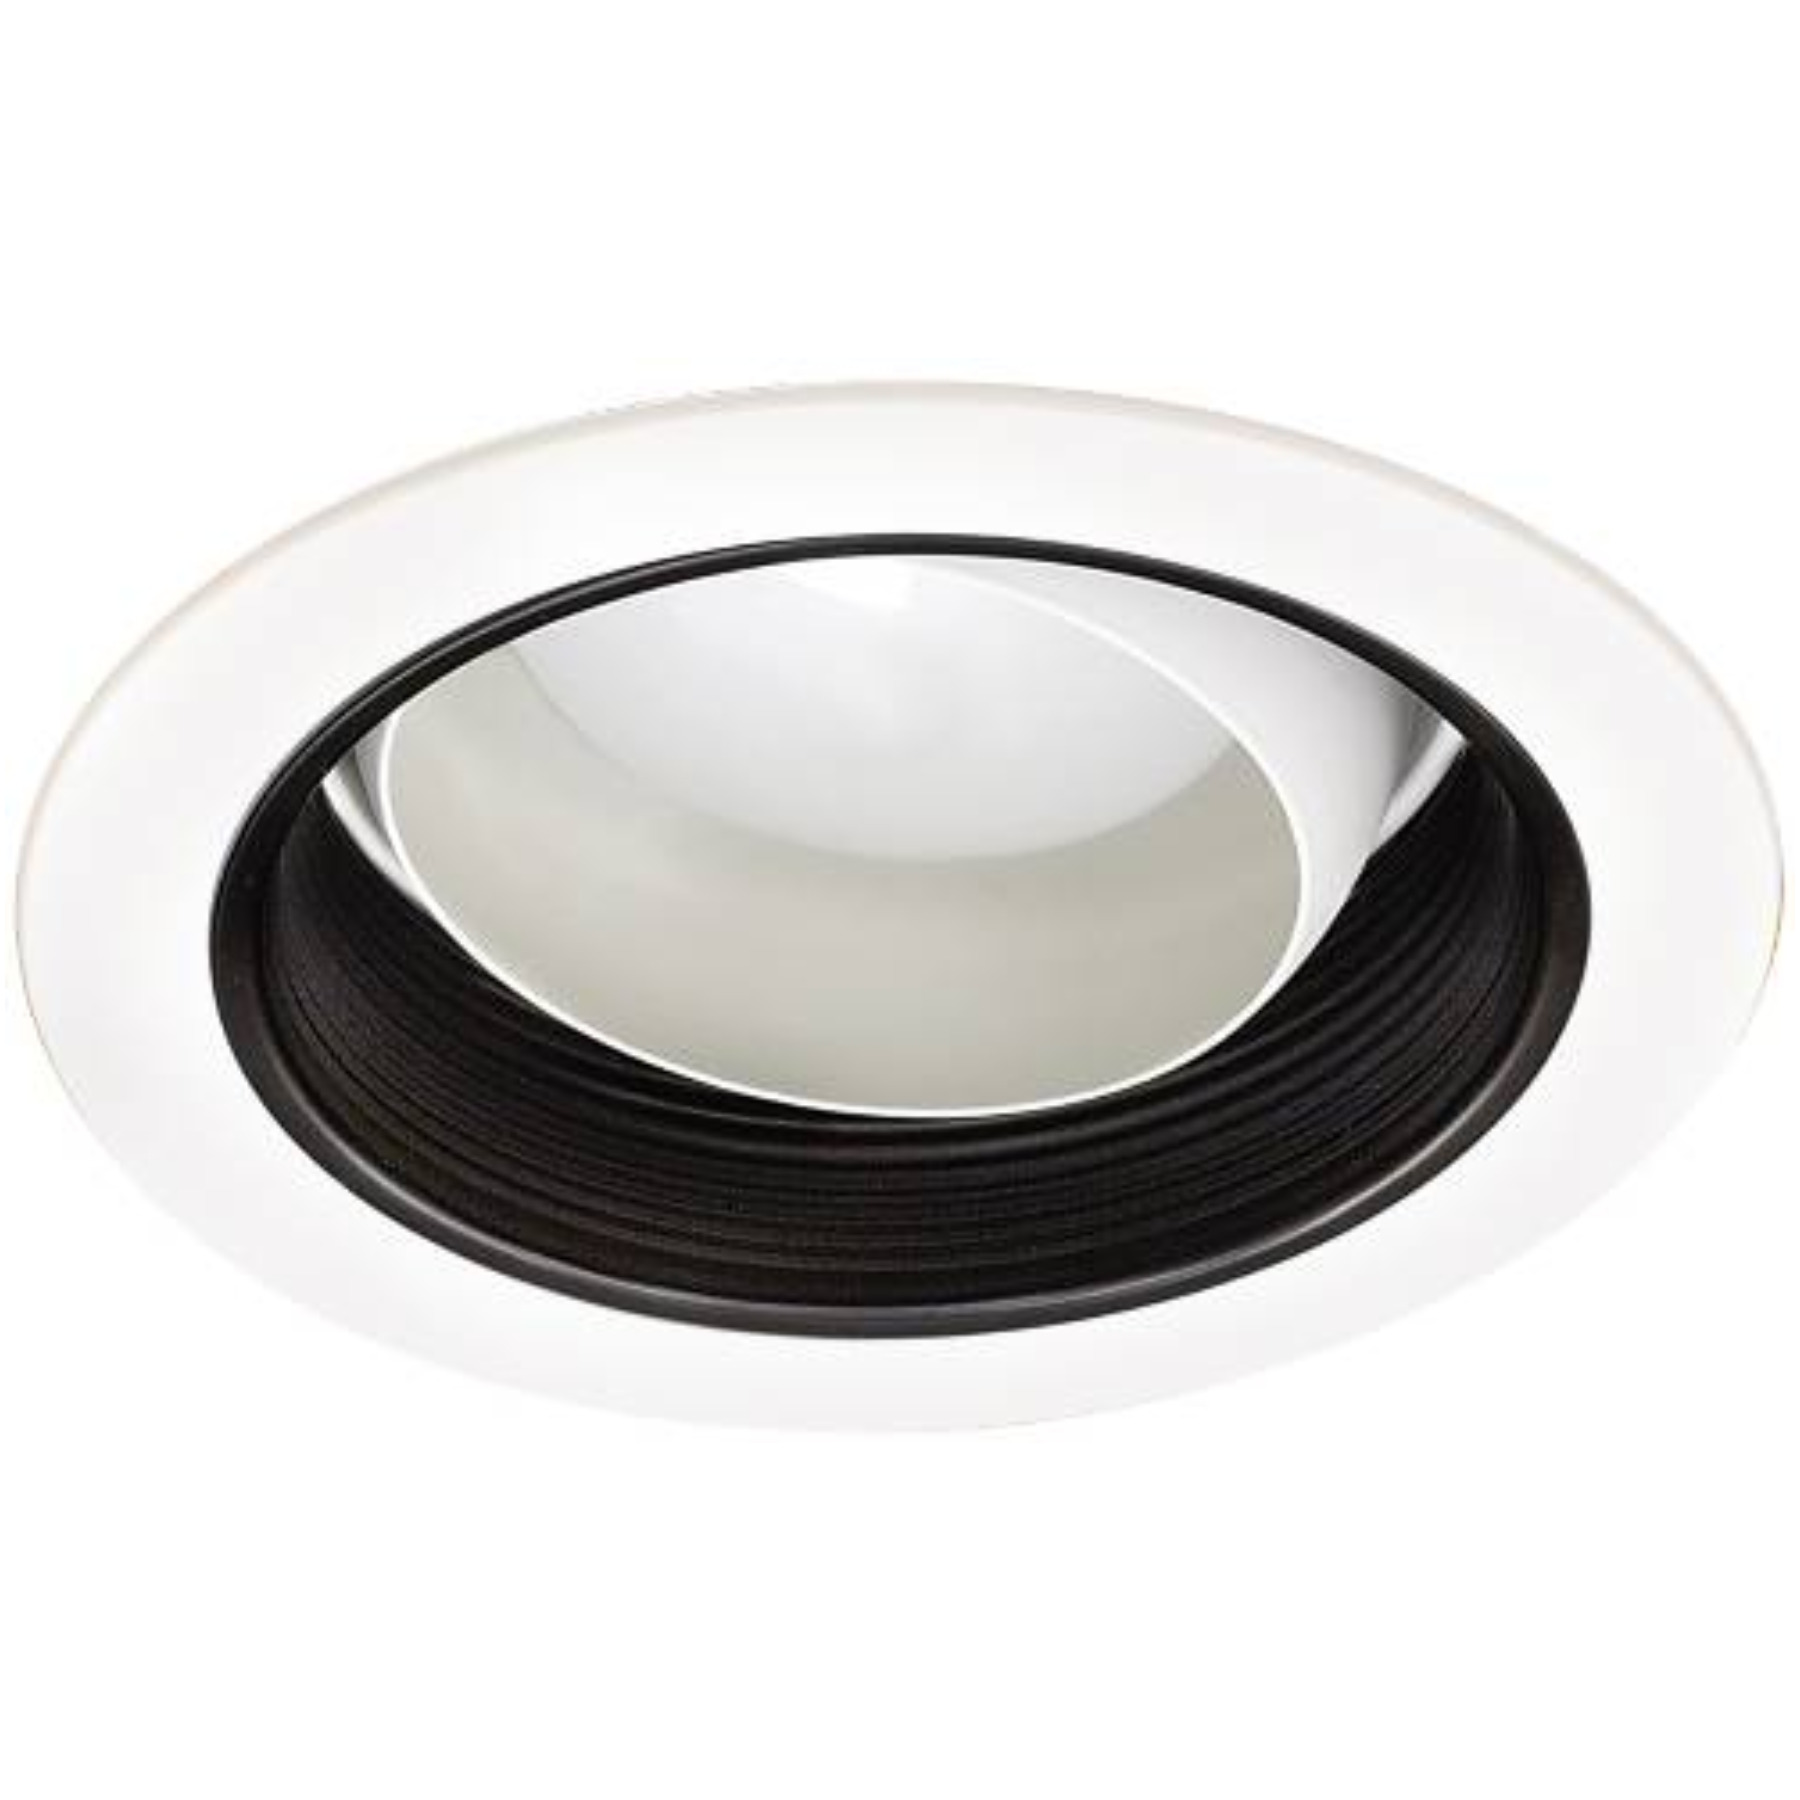 MONUMENT� 6 IN. RECESSED REGRESSED EYEBALL TRIM, WHITE WITH BLACK BAFFLE, 7-3/4 X 4 IN., BR30/PAR30